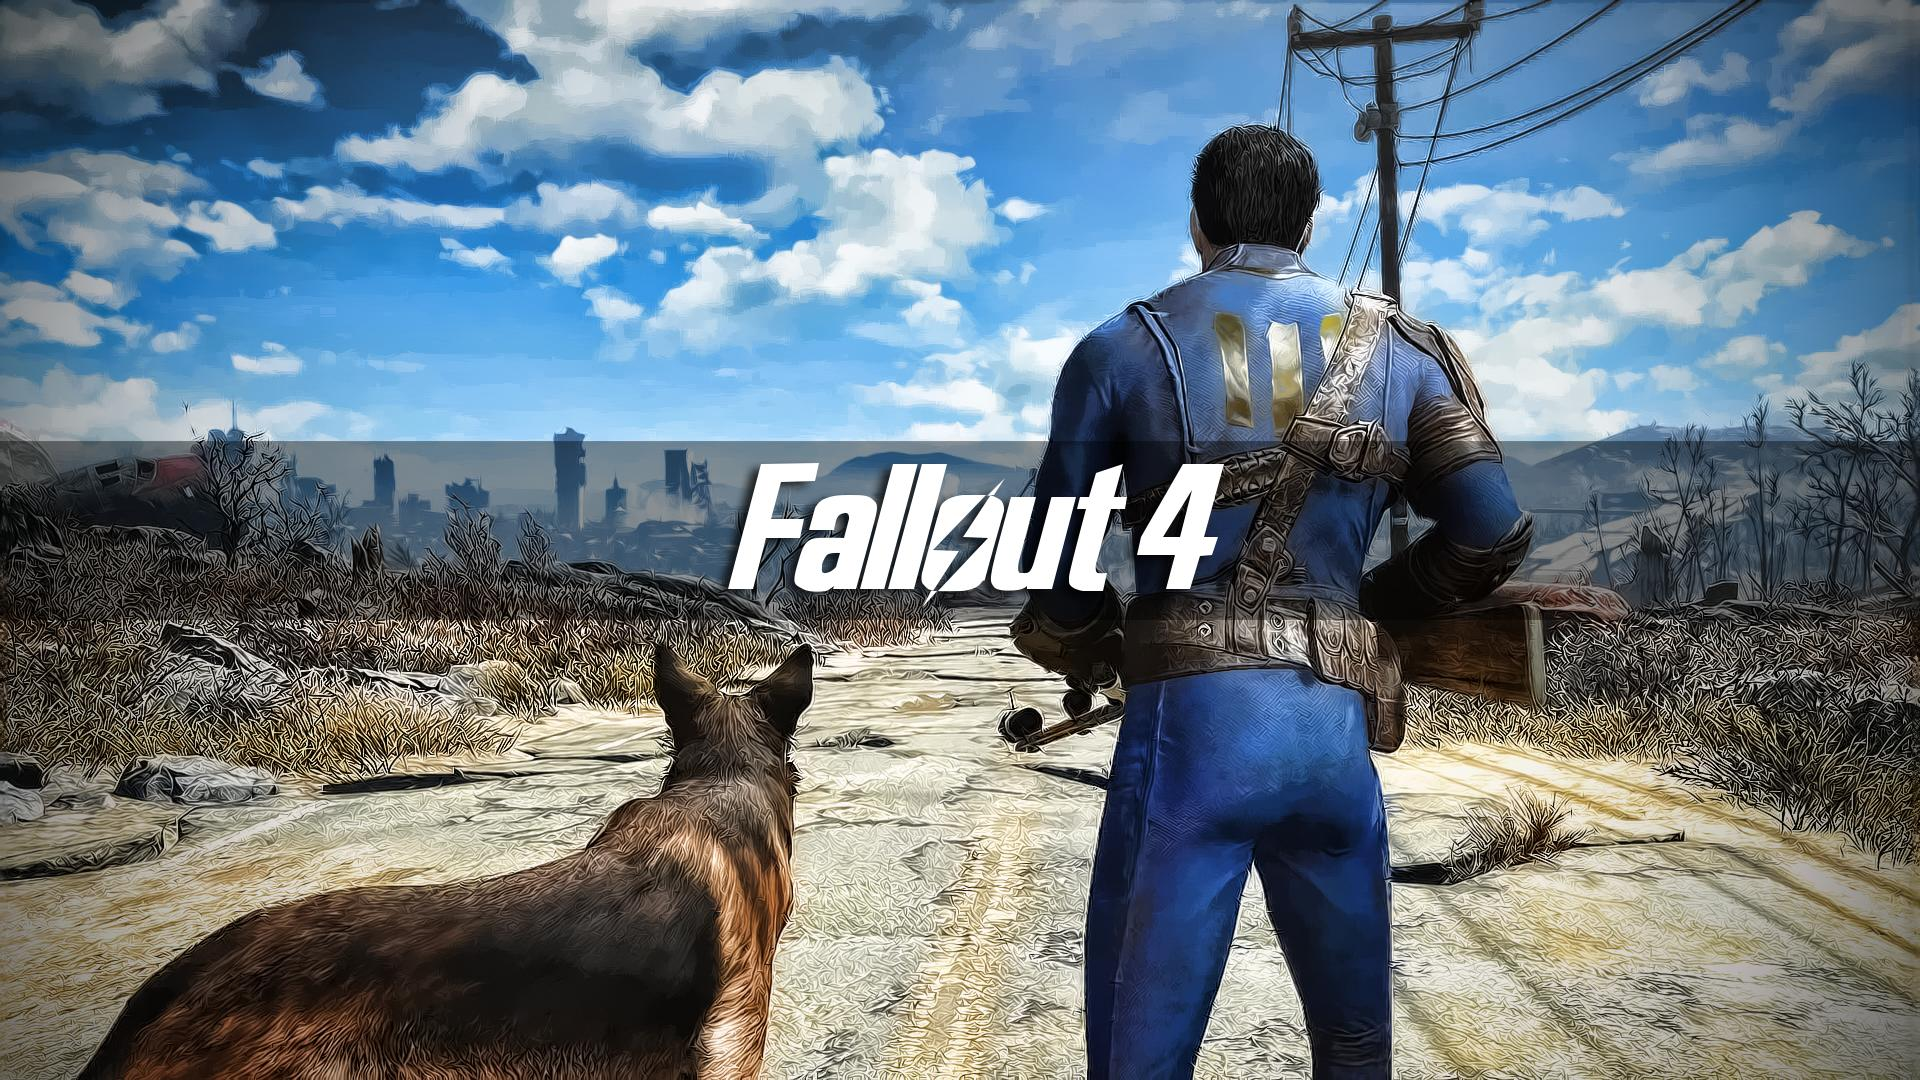 Fallout 4 Tips, Tricks, Unlockables and Achievements on PS4, Xbox